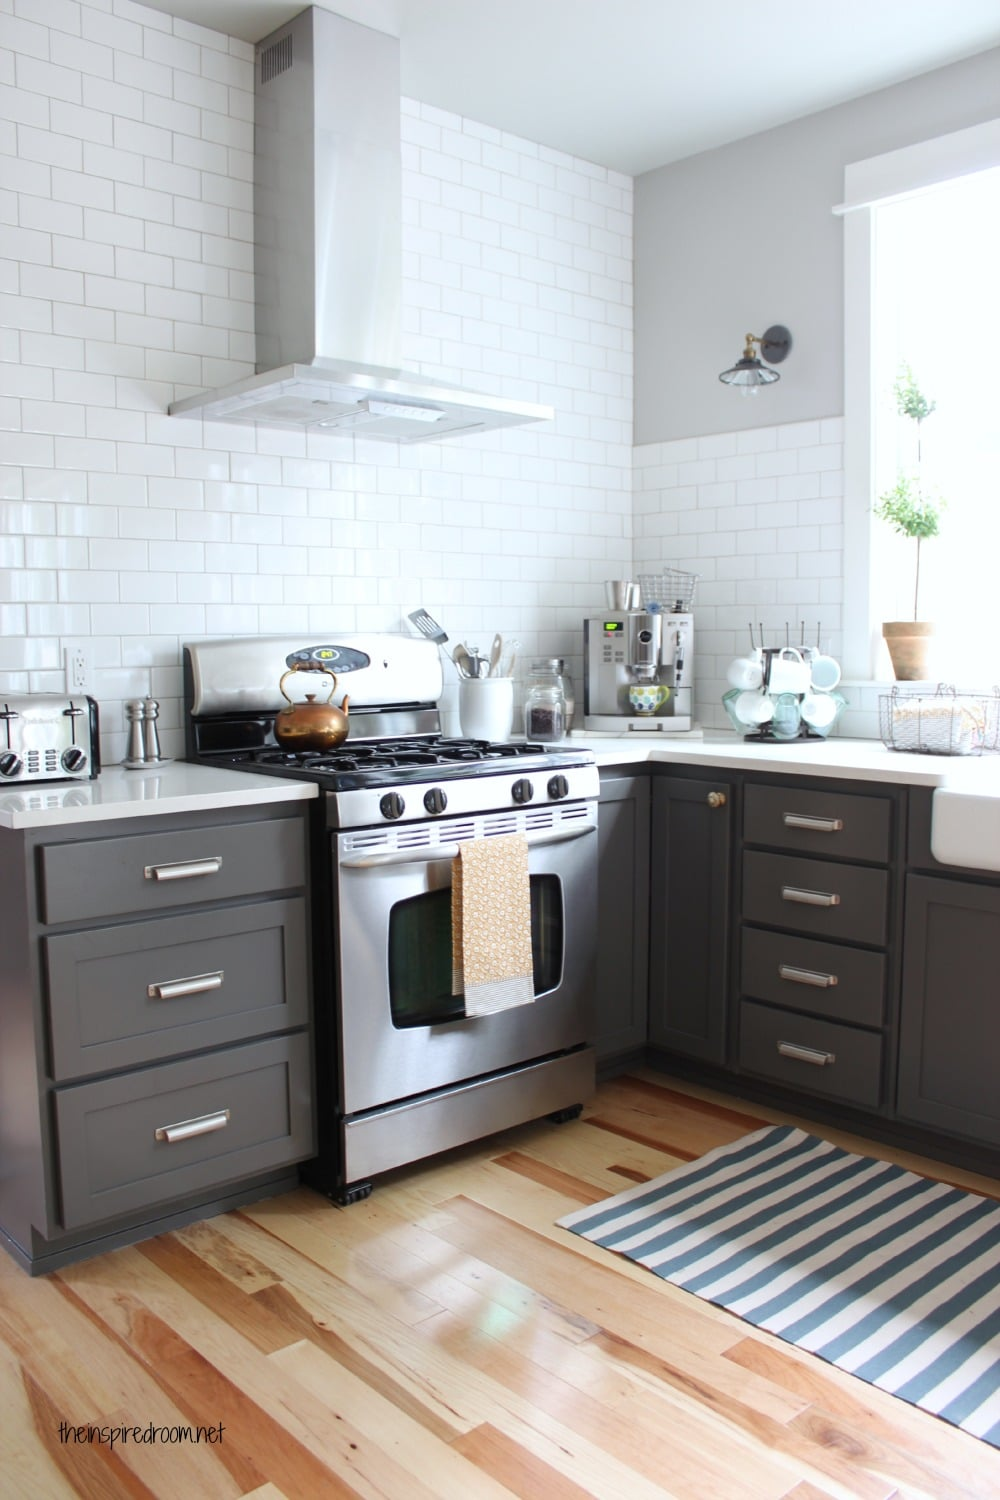 kitchen cabinet colors gray kitchen cabinets charcoal painted kitchen cabinet colors